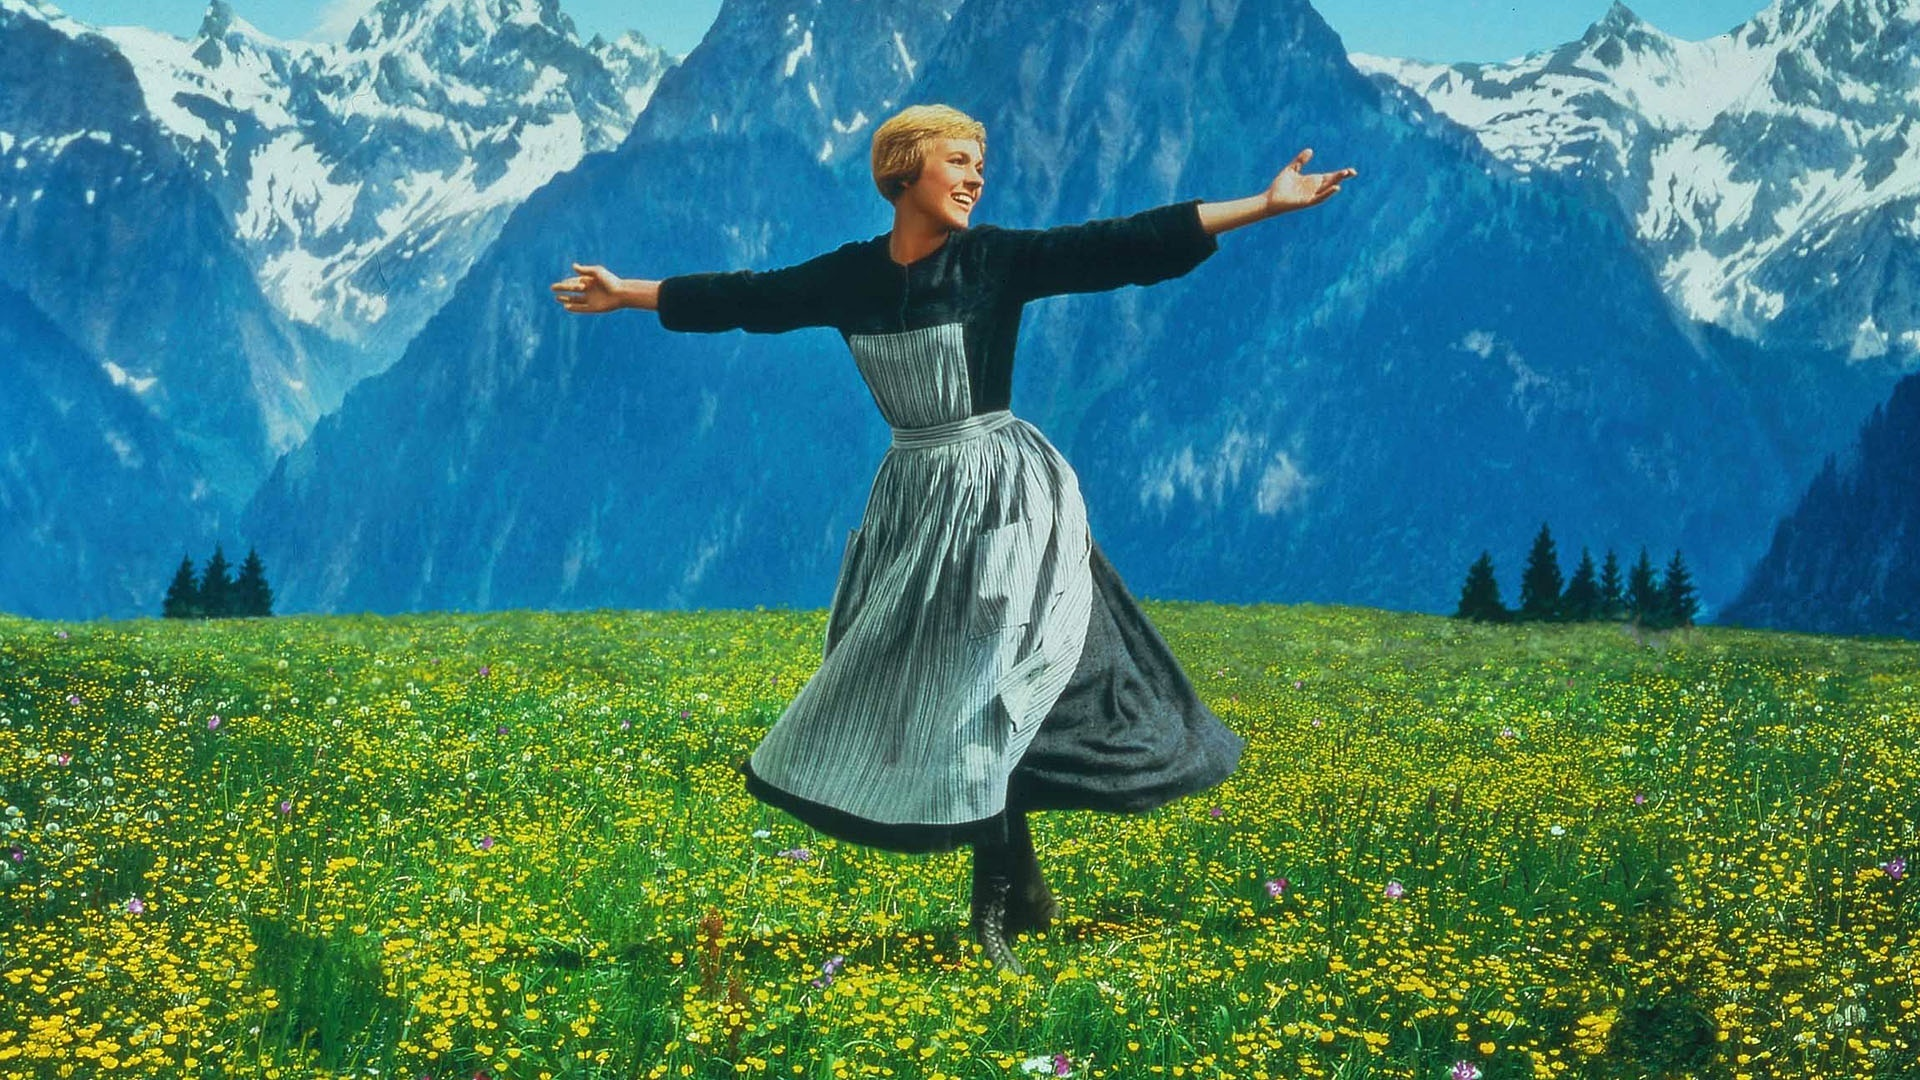 'The Sound of Music' viert vijfigste verjaardag